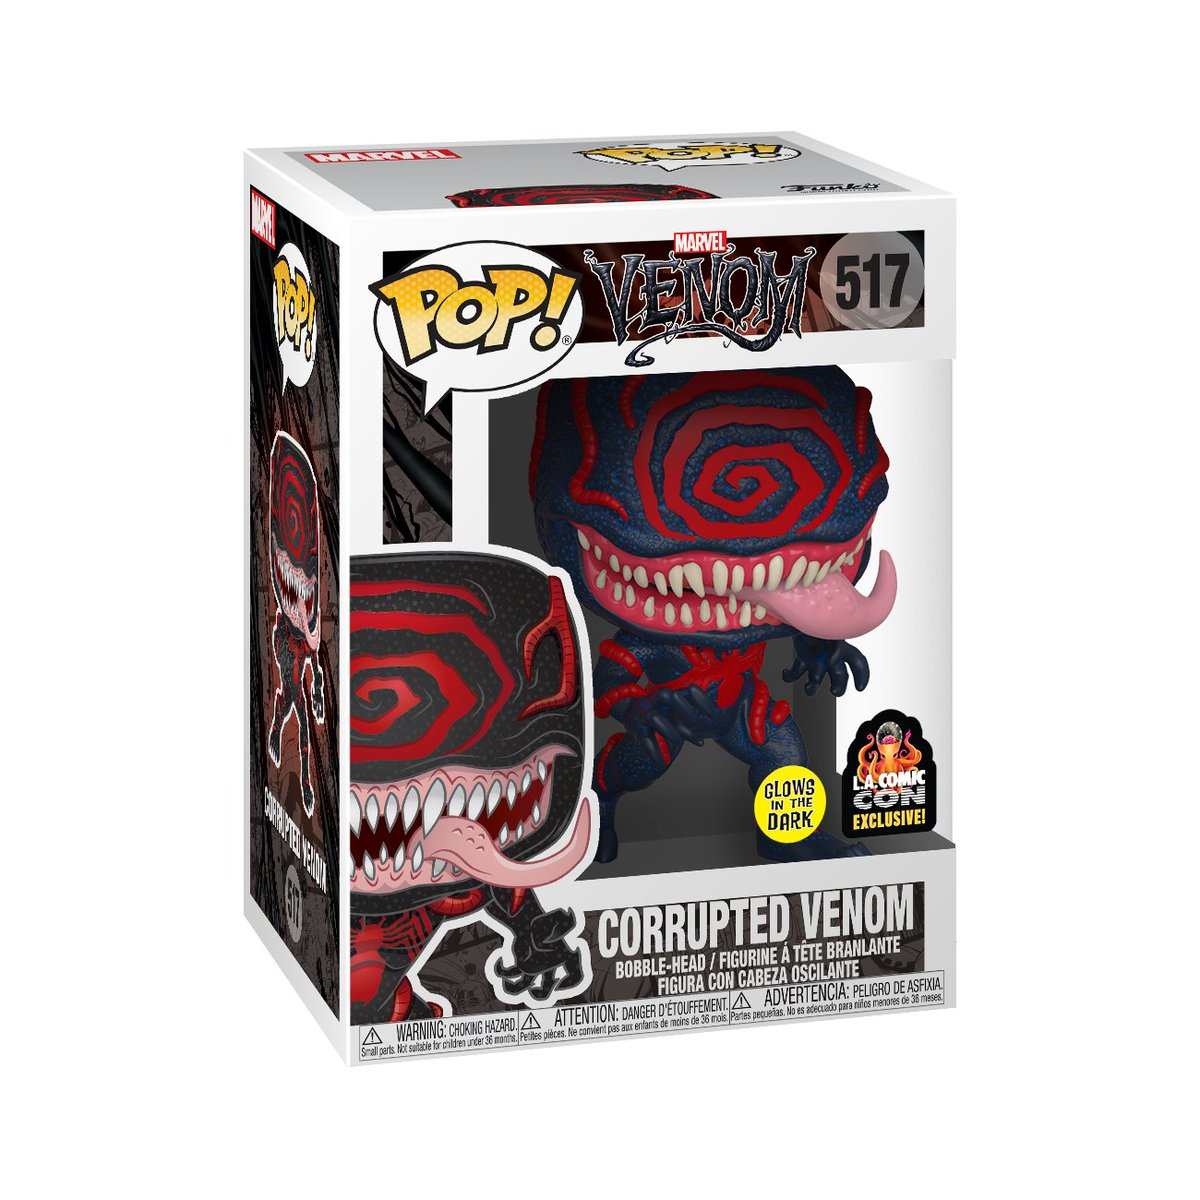 RT & follow @OriginalFunko for a chance to WIN a @HotTopic L.A. Comic Con exclusive Glow-in-the-Dark Corrupted Venom Pop!  #Funko #Pop #Exclusive #Giveaway #FunkoFamily #Marvel